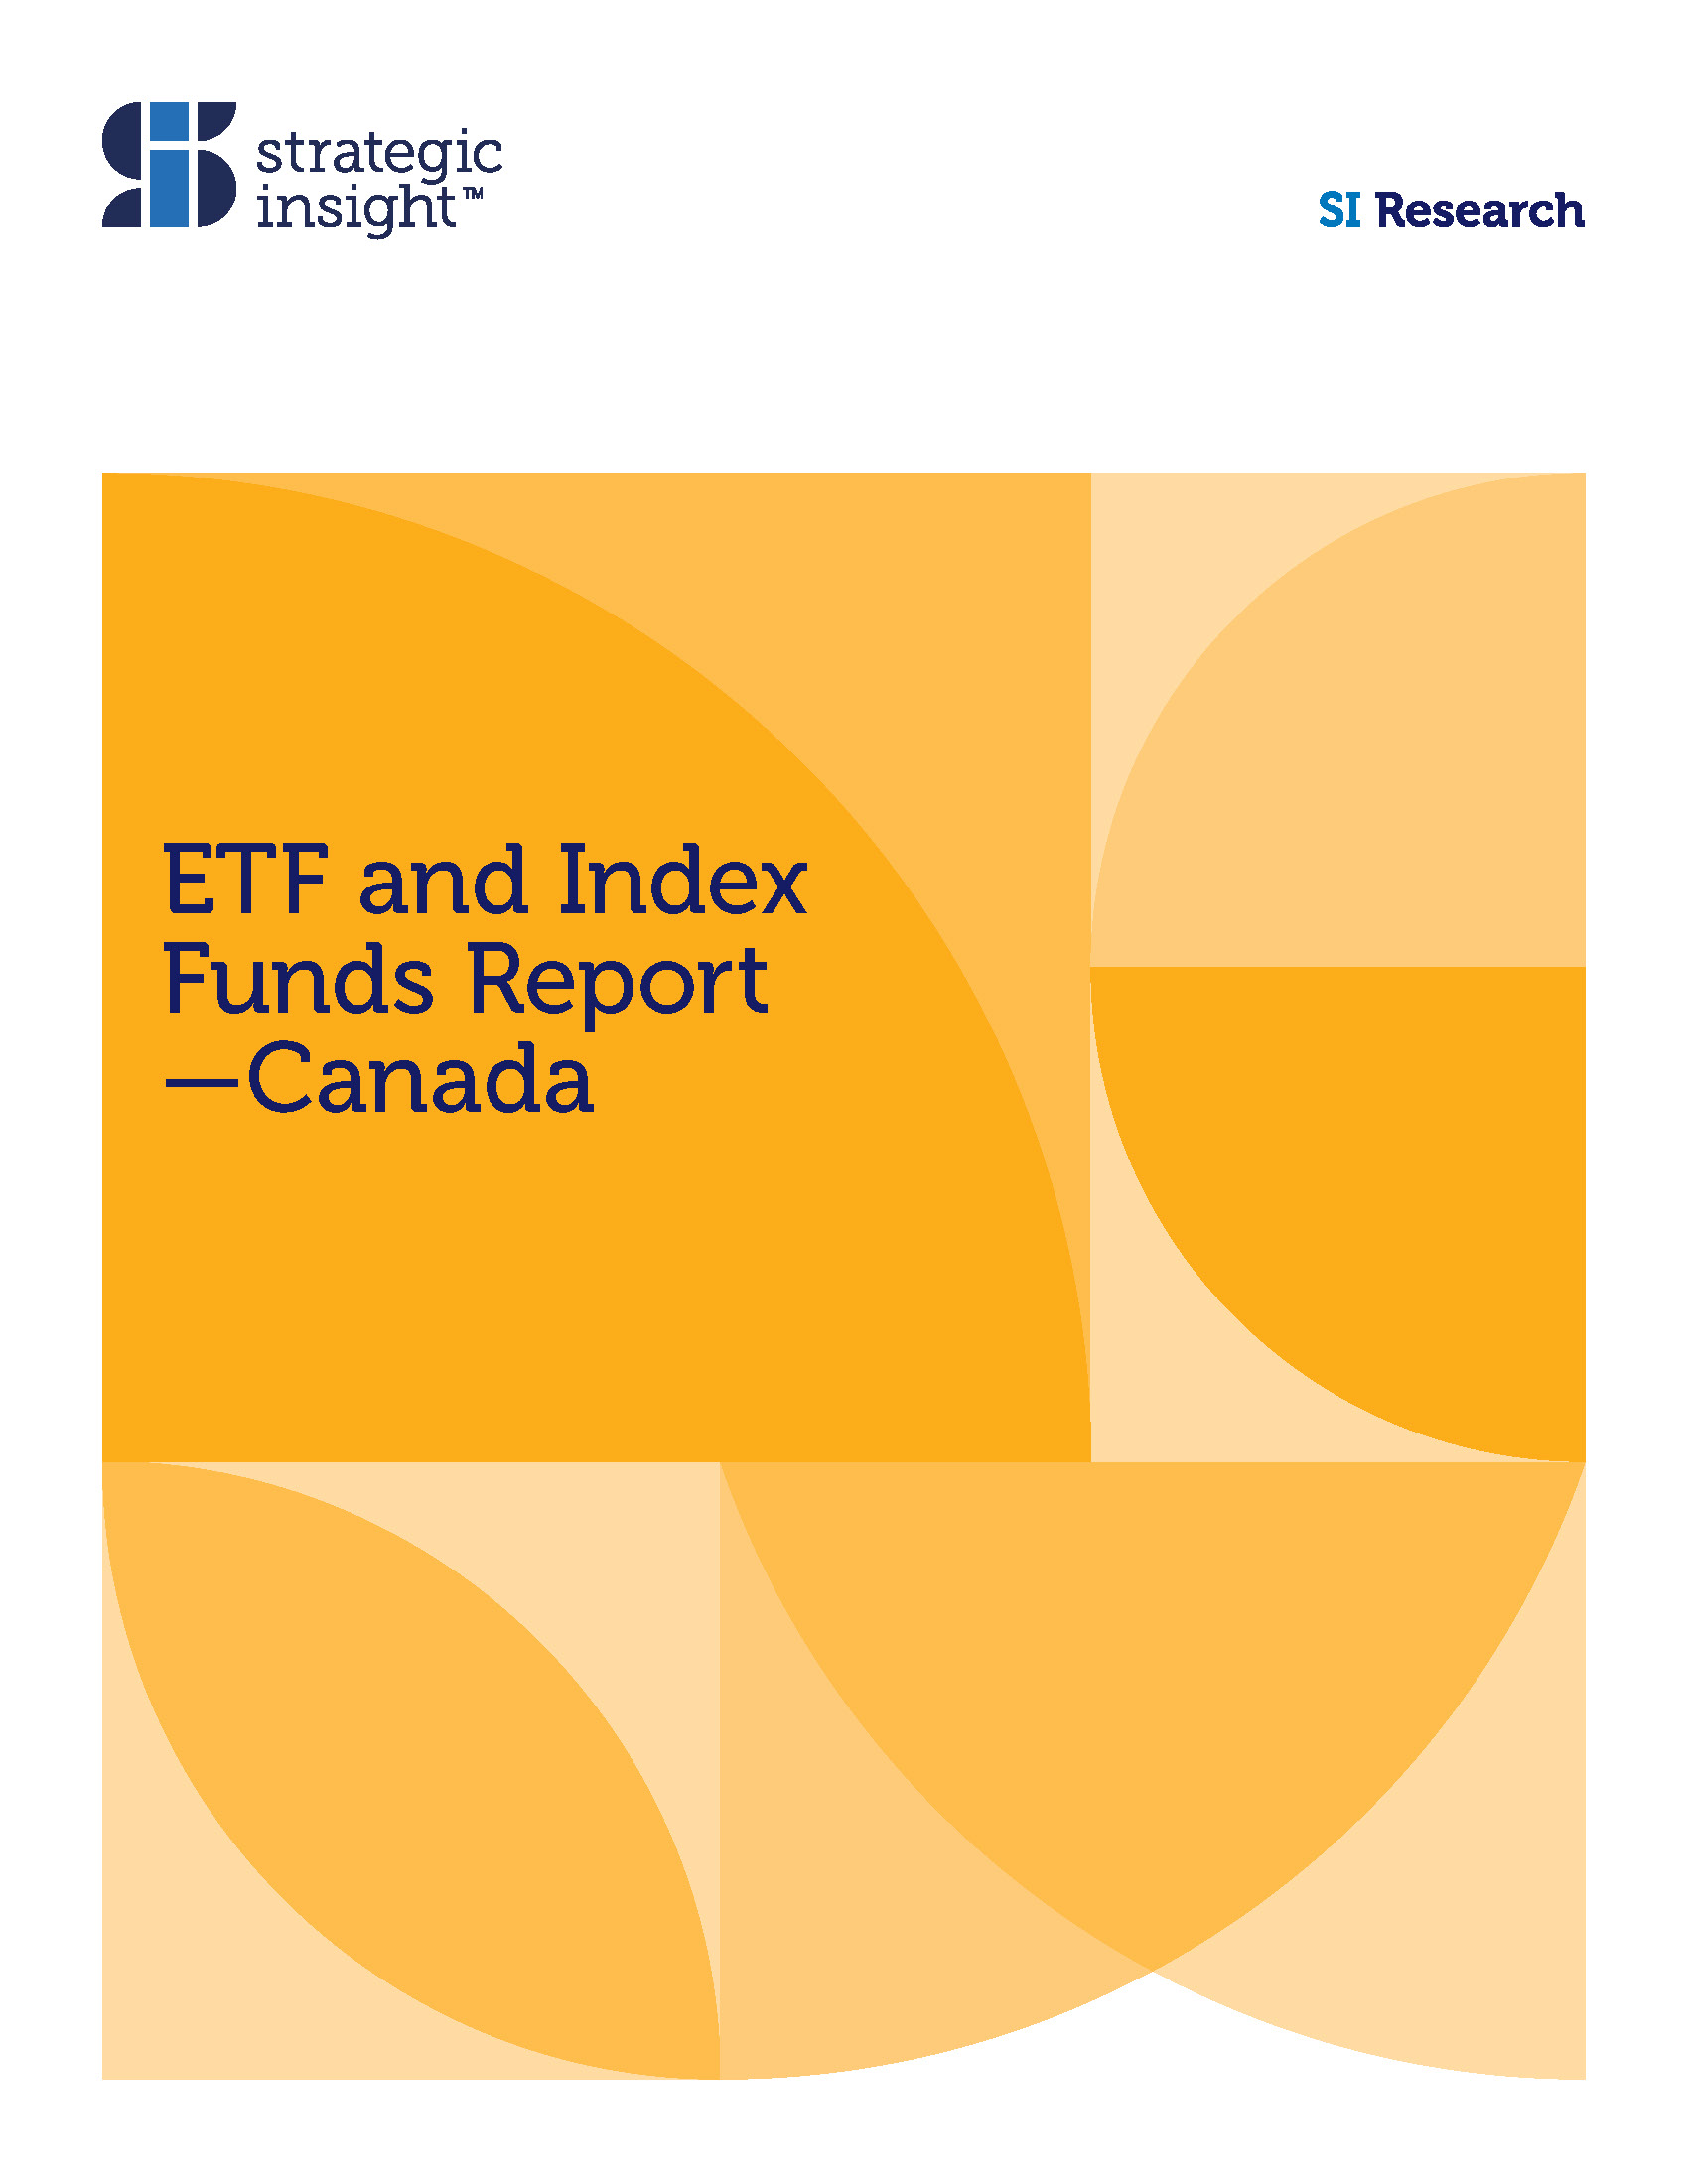 ETF and Index Funds Report Q4 2018—Pre-release